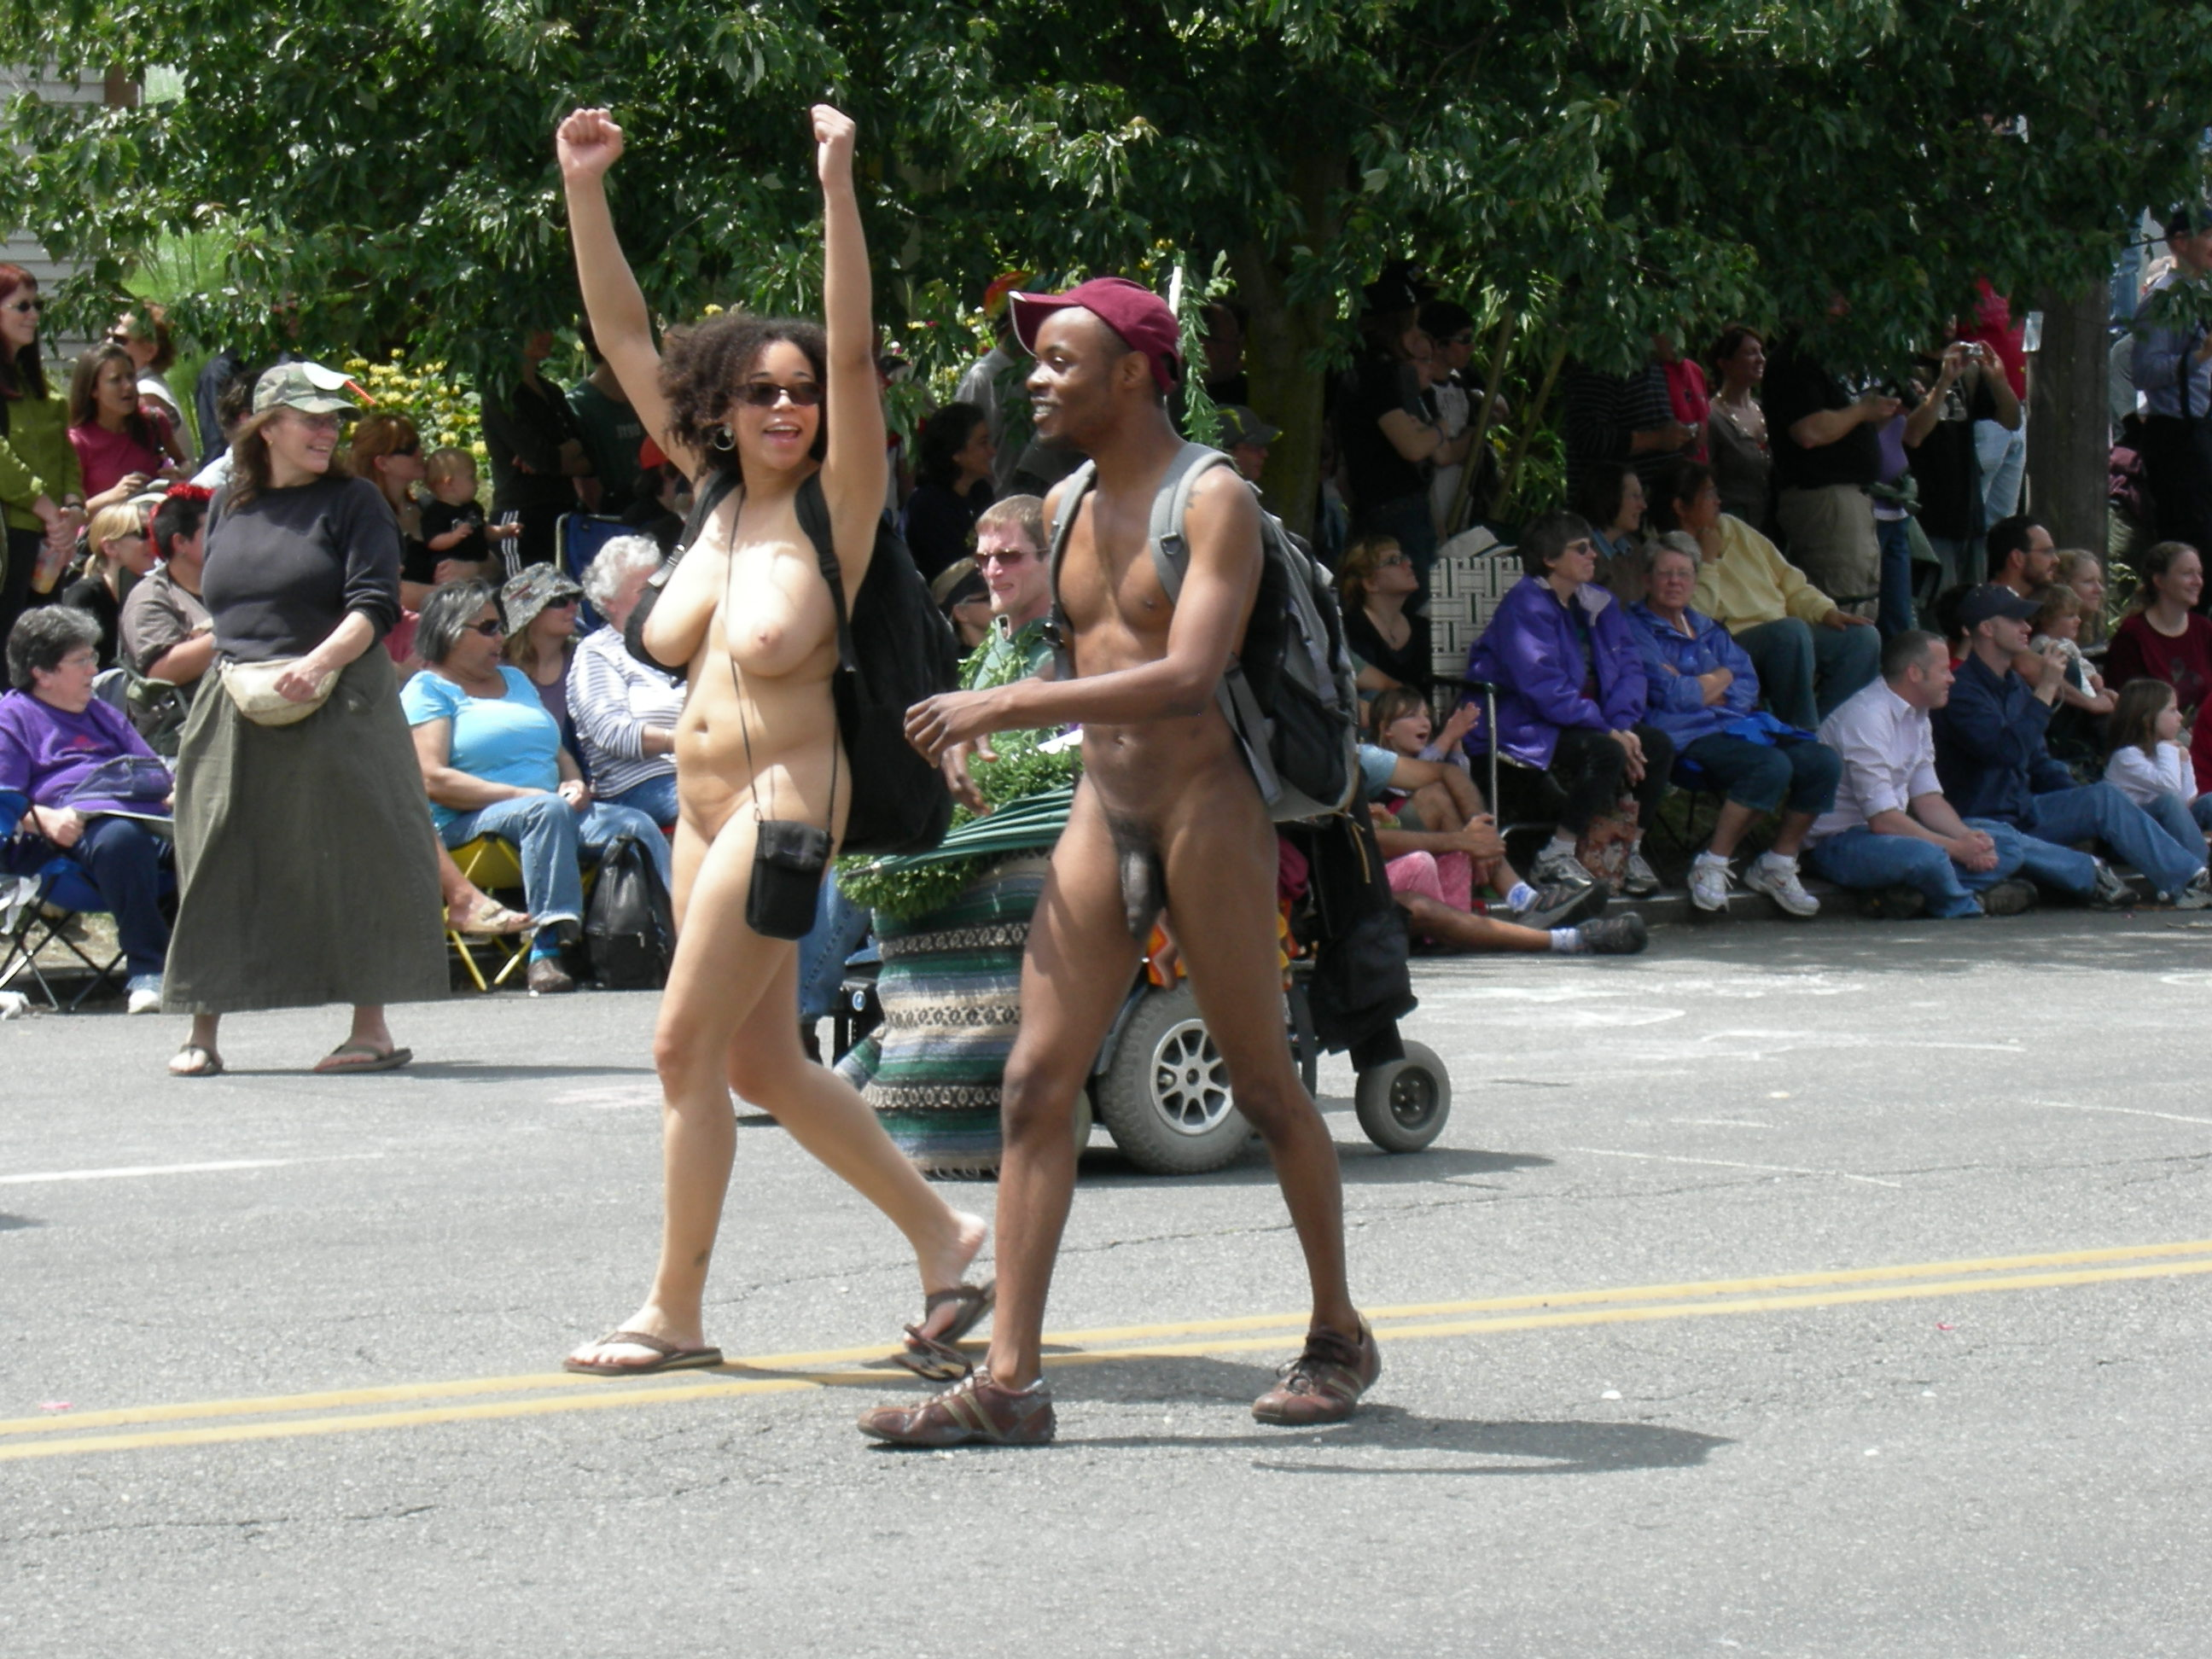 http://upload.wikimedia.org/wikipedia/commons/4/4e/Fremont_Solstice_Parade_2007_-_naked_couple_01.jpg